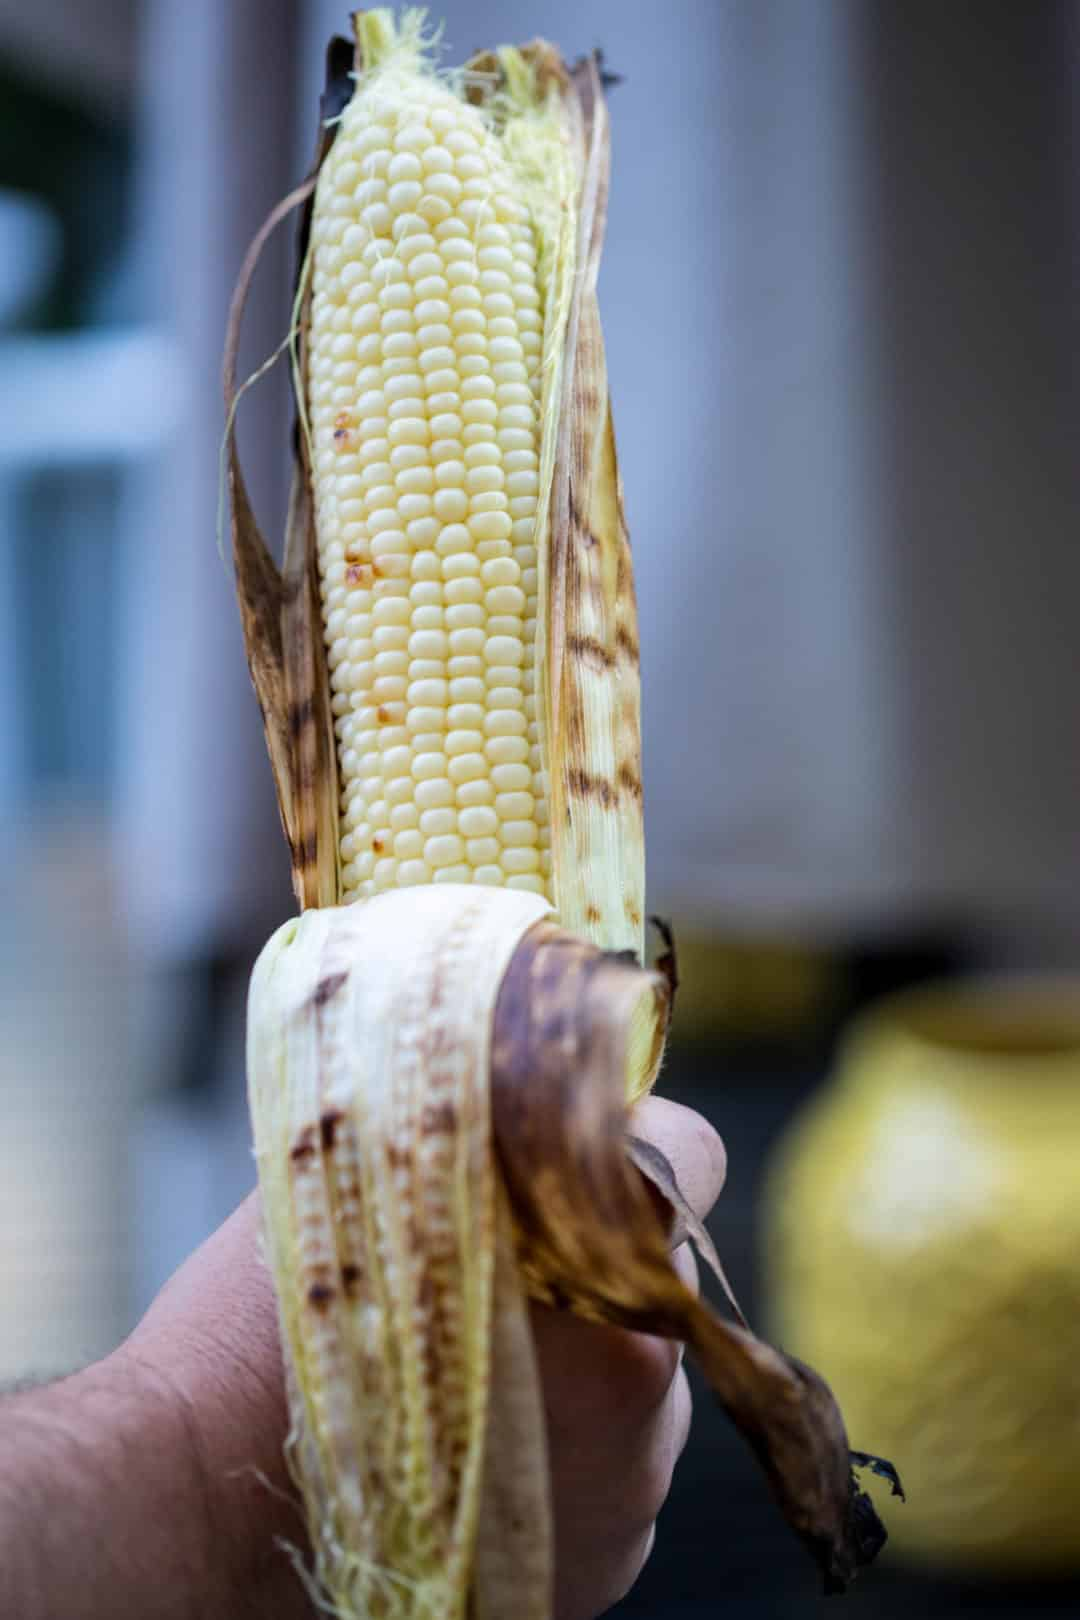 hand holding ear of grilled corn with husk pulled back